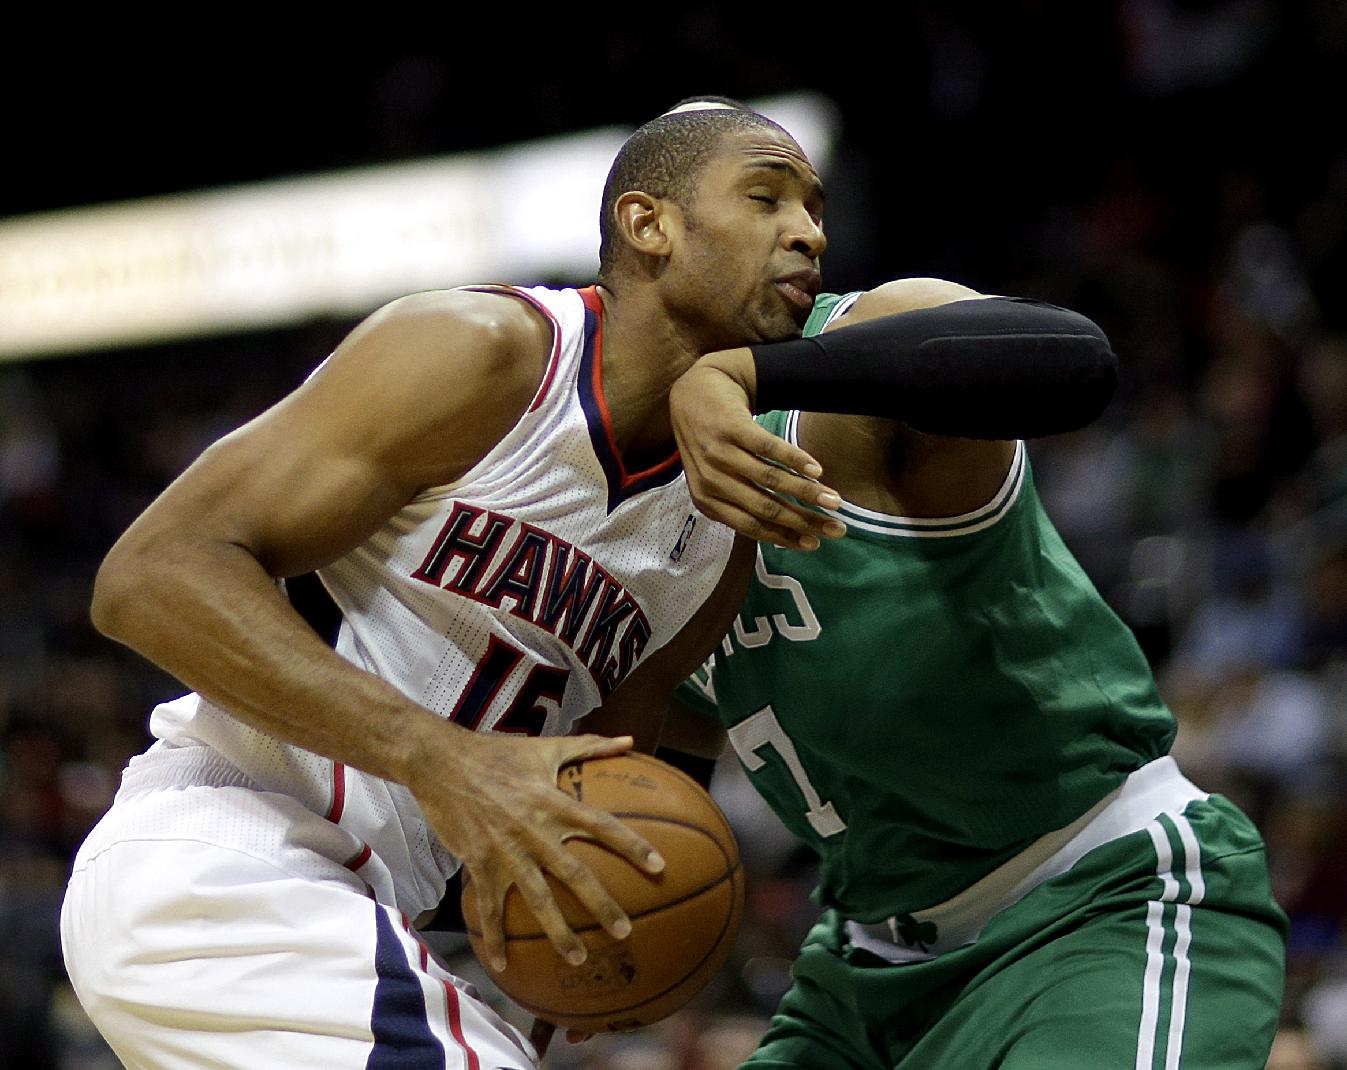 Atlanta Hawks' Al Horford, left, collides with the arm of Boston Celtics' Jared Sullinger during the first quarter of an NBA basketball game, Saturday, Nov. 23, 2013, in Atlanta